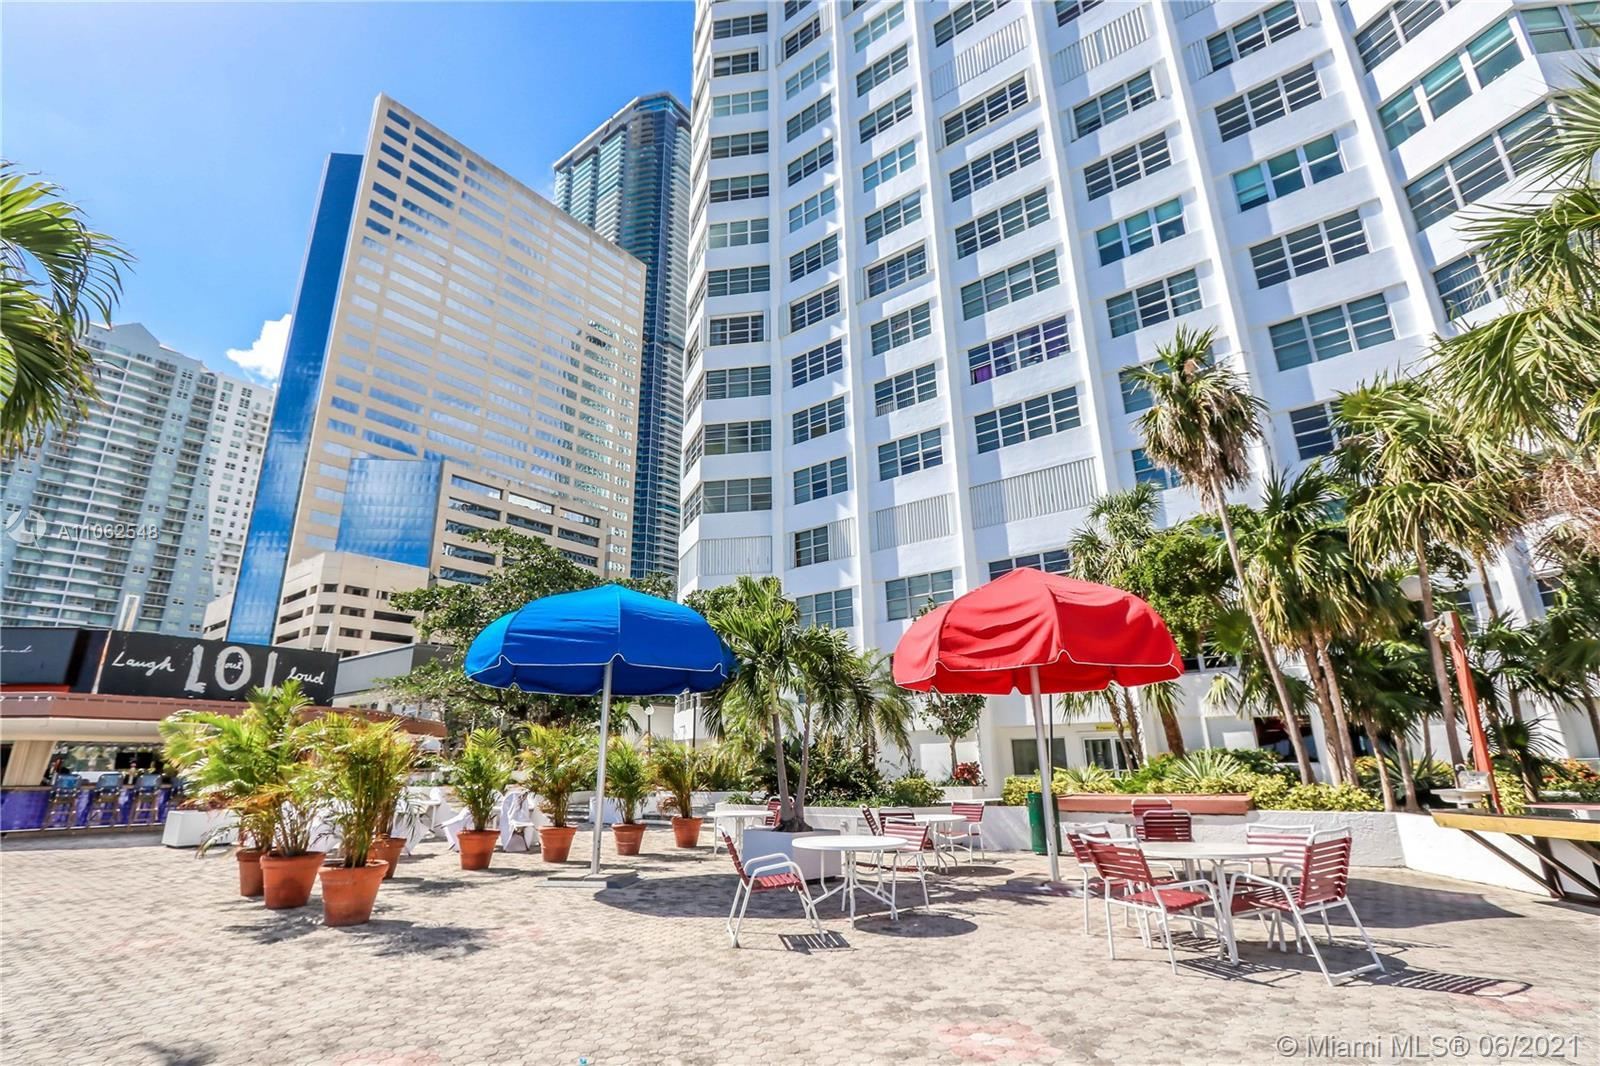 Courts Brickell Key - Condos for sale